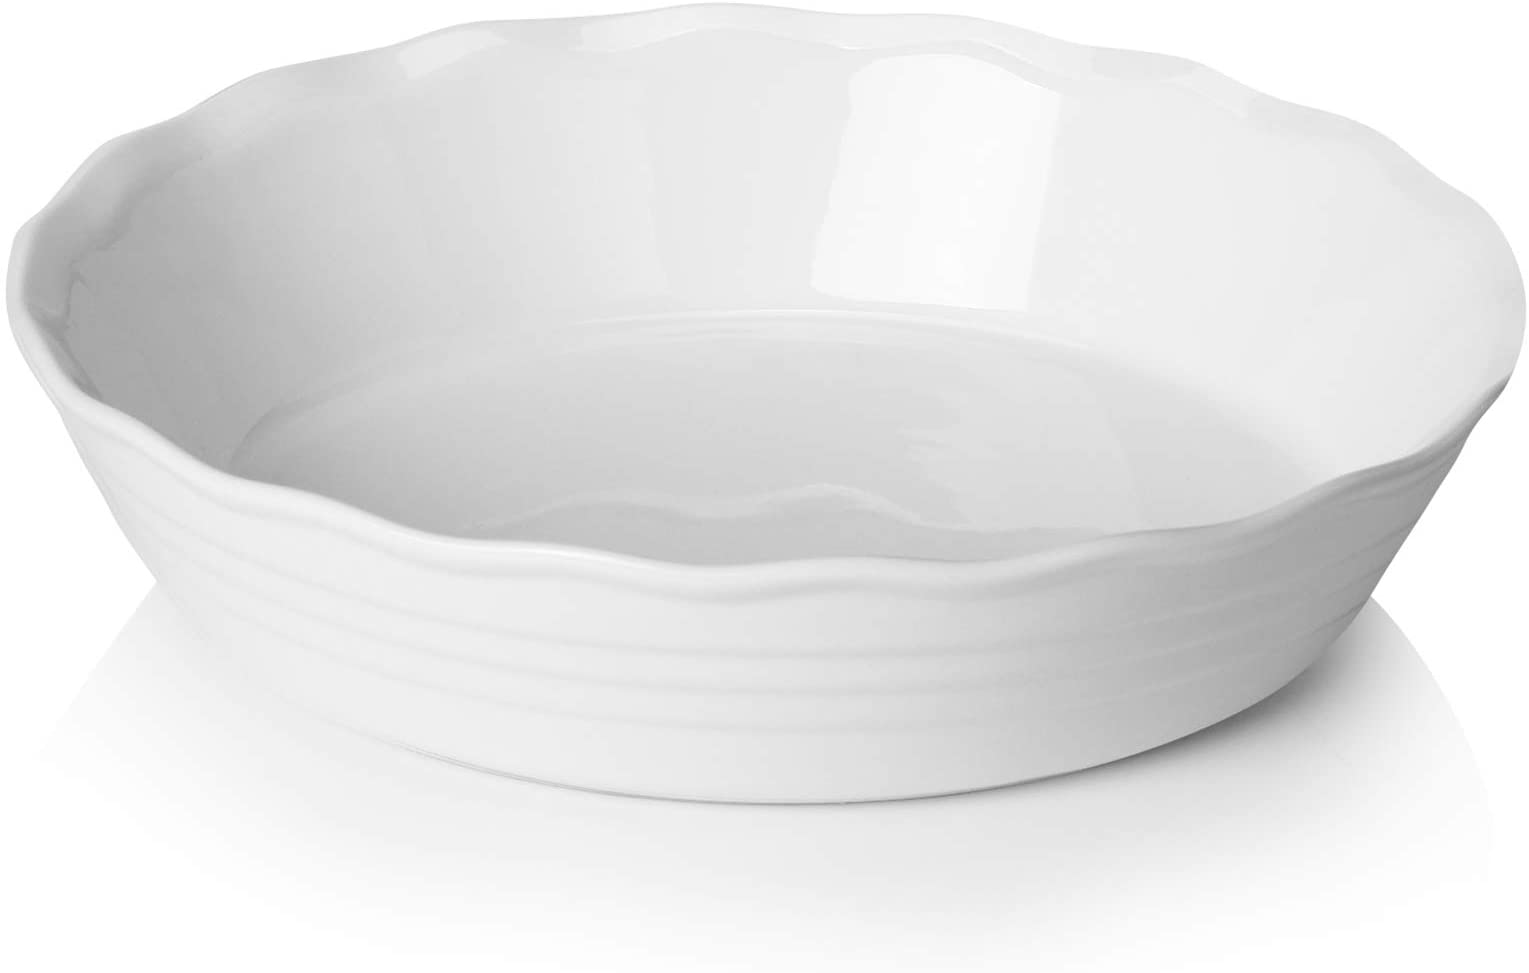 Sweese 516.101 Porcelain Pie Pan, 9 Inches Pie Plate, Round Baking Dish with Ruffled Edge, White